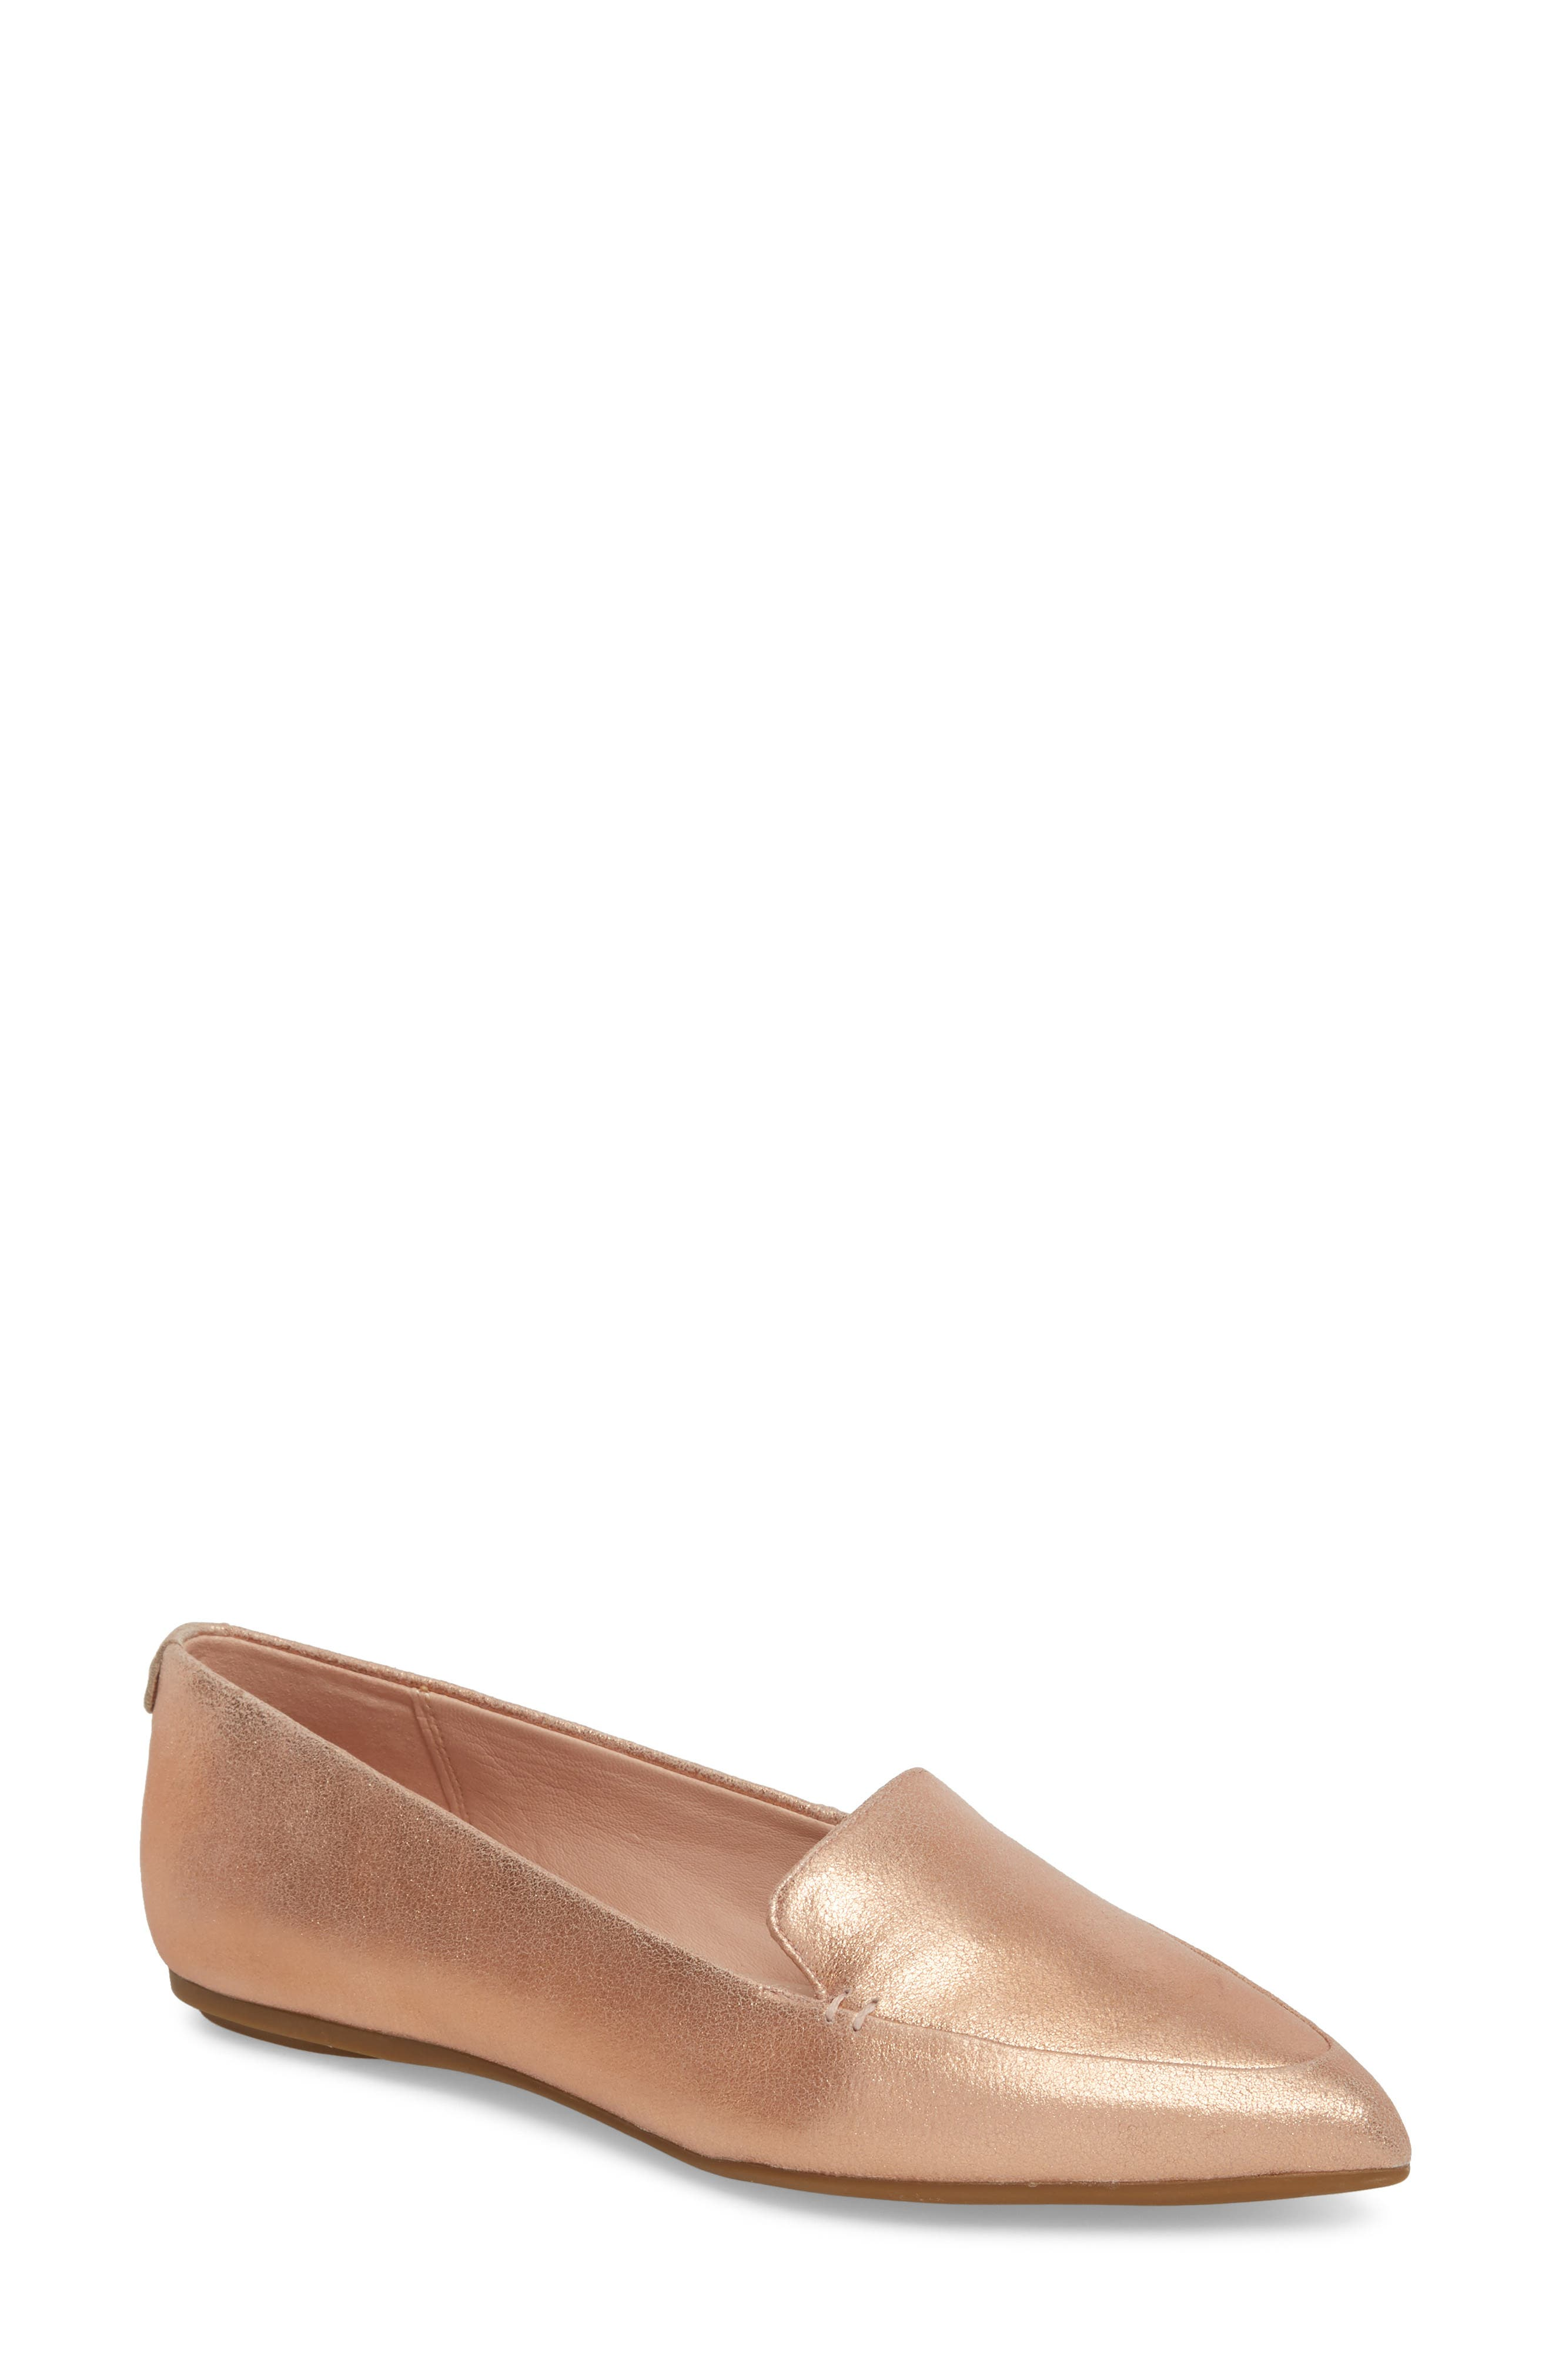 Faye Pointy Toe Loafer,                         Main,                         color, Rose Gold Metallic Leather